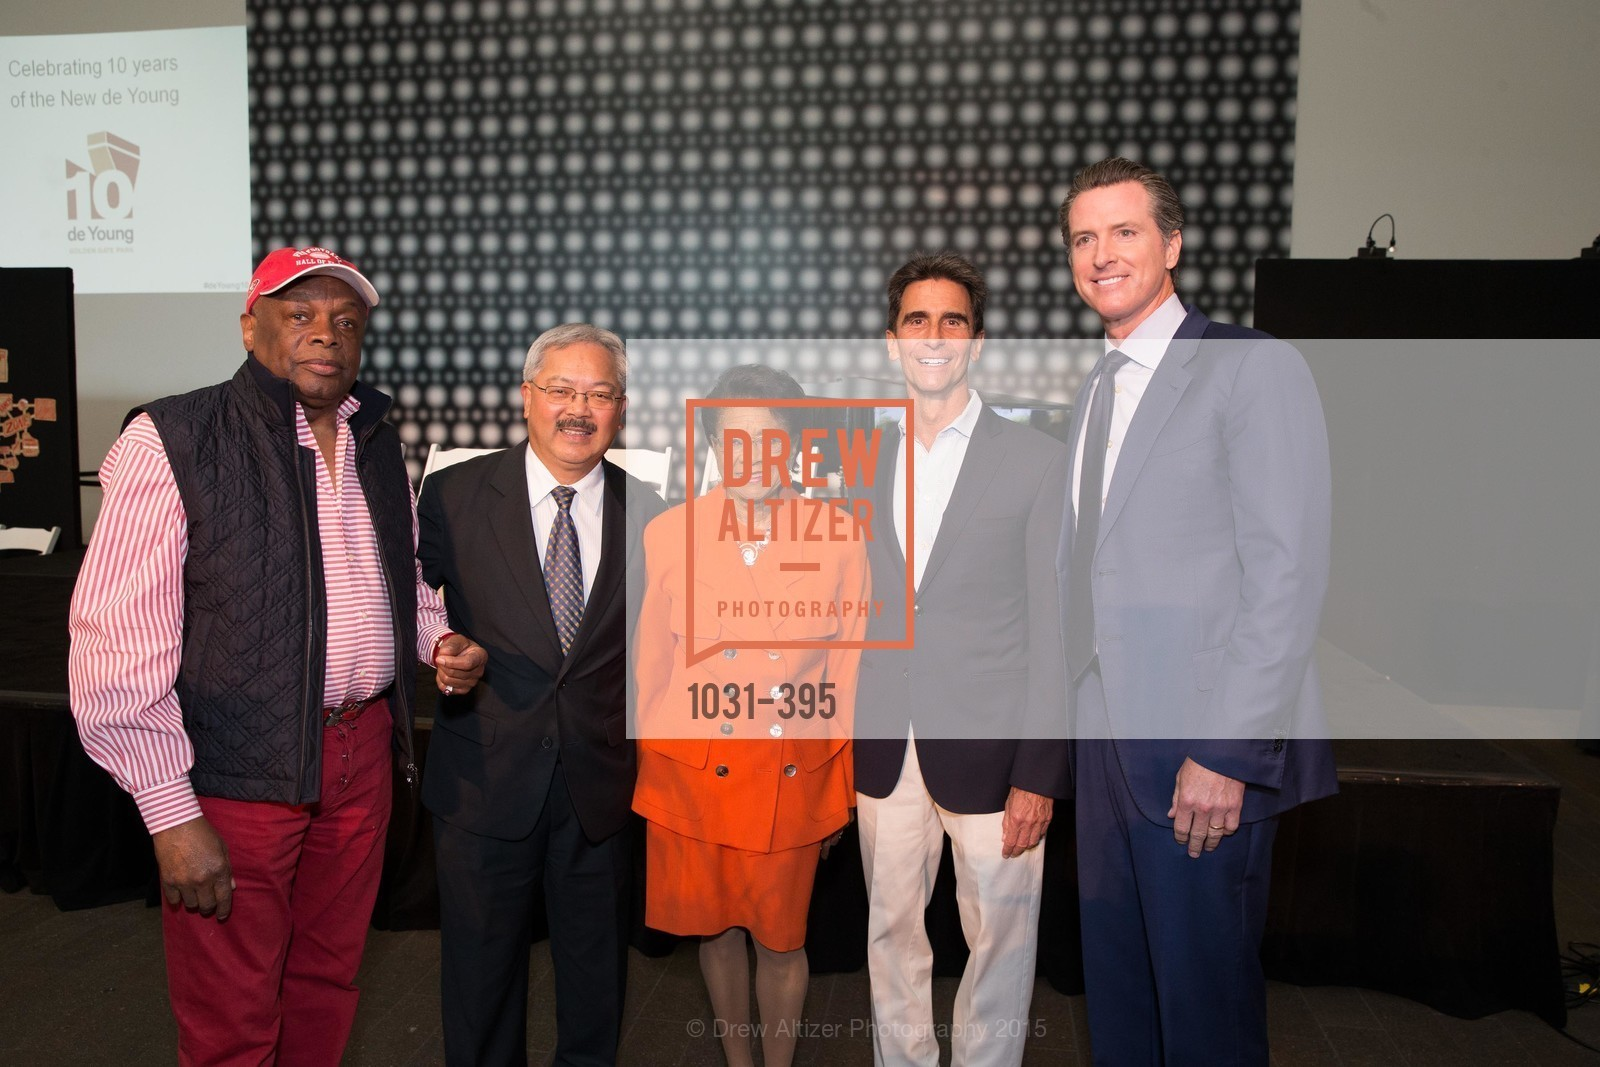 Willie Brown, Ed Lee, Belva Davis, Mark Leno, Gavin Newsom, 10th Anniversary of the new de Young: Community Day, de Young Museum, October 17th, 2015,Drew Altizer, Drew Altizer Photography, full-service agency, private events, San Francisco photographer, photographer california